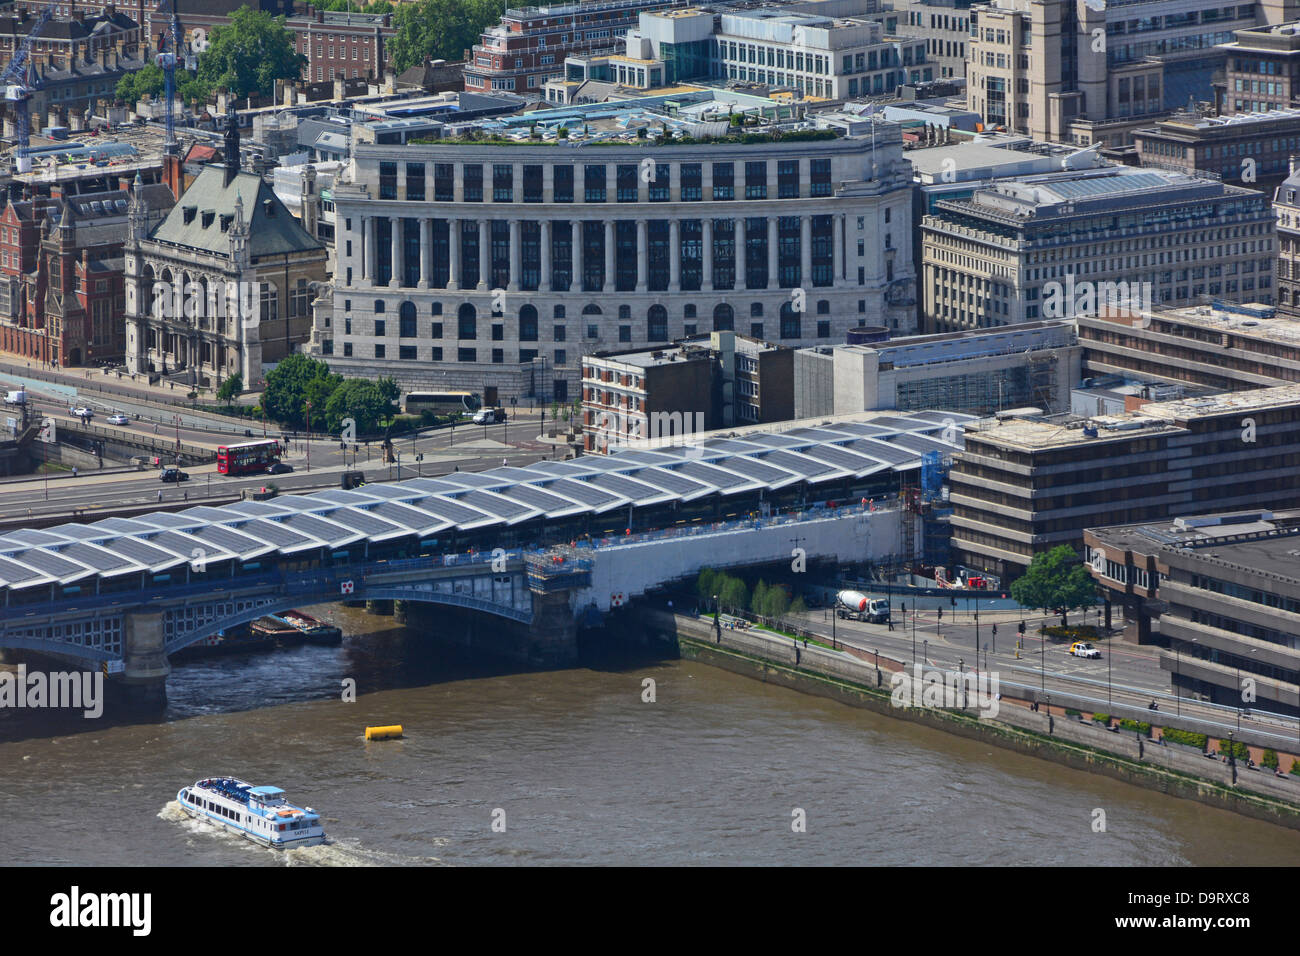 New photovoltaic solar panel roof over new Blackfriars railway station platforms with the Unilever House Building - Stock Image